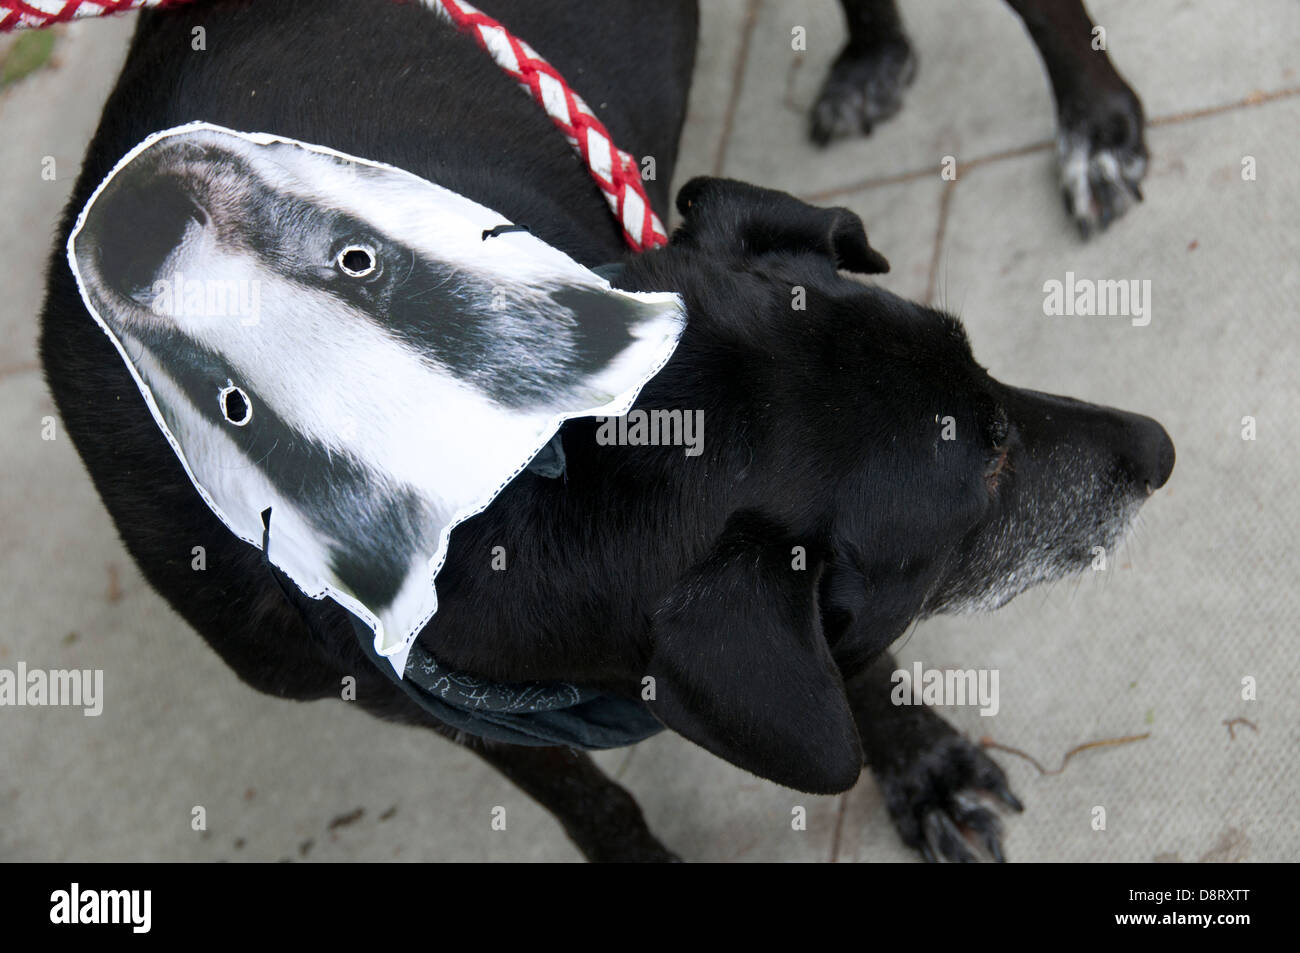 Protest against the proposed cull of badgers June 1st 2013. A dog with a badger mask on his back - Stock Image